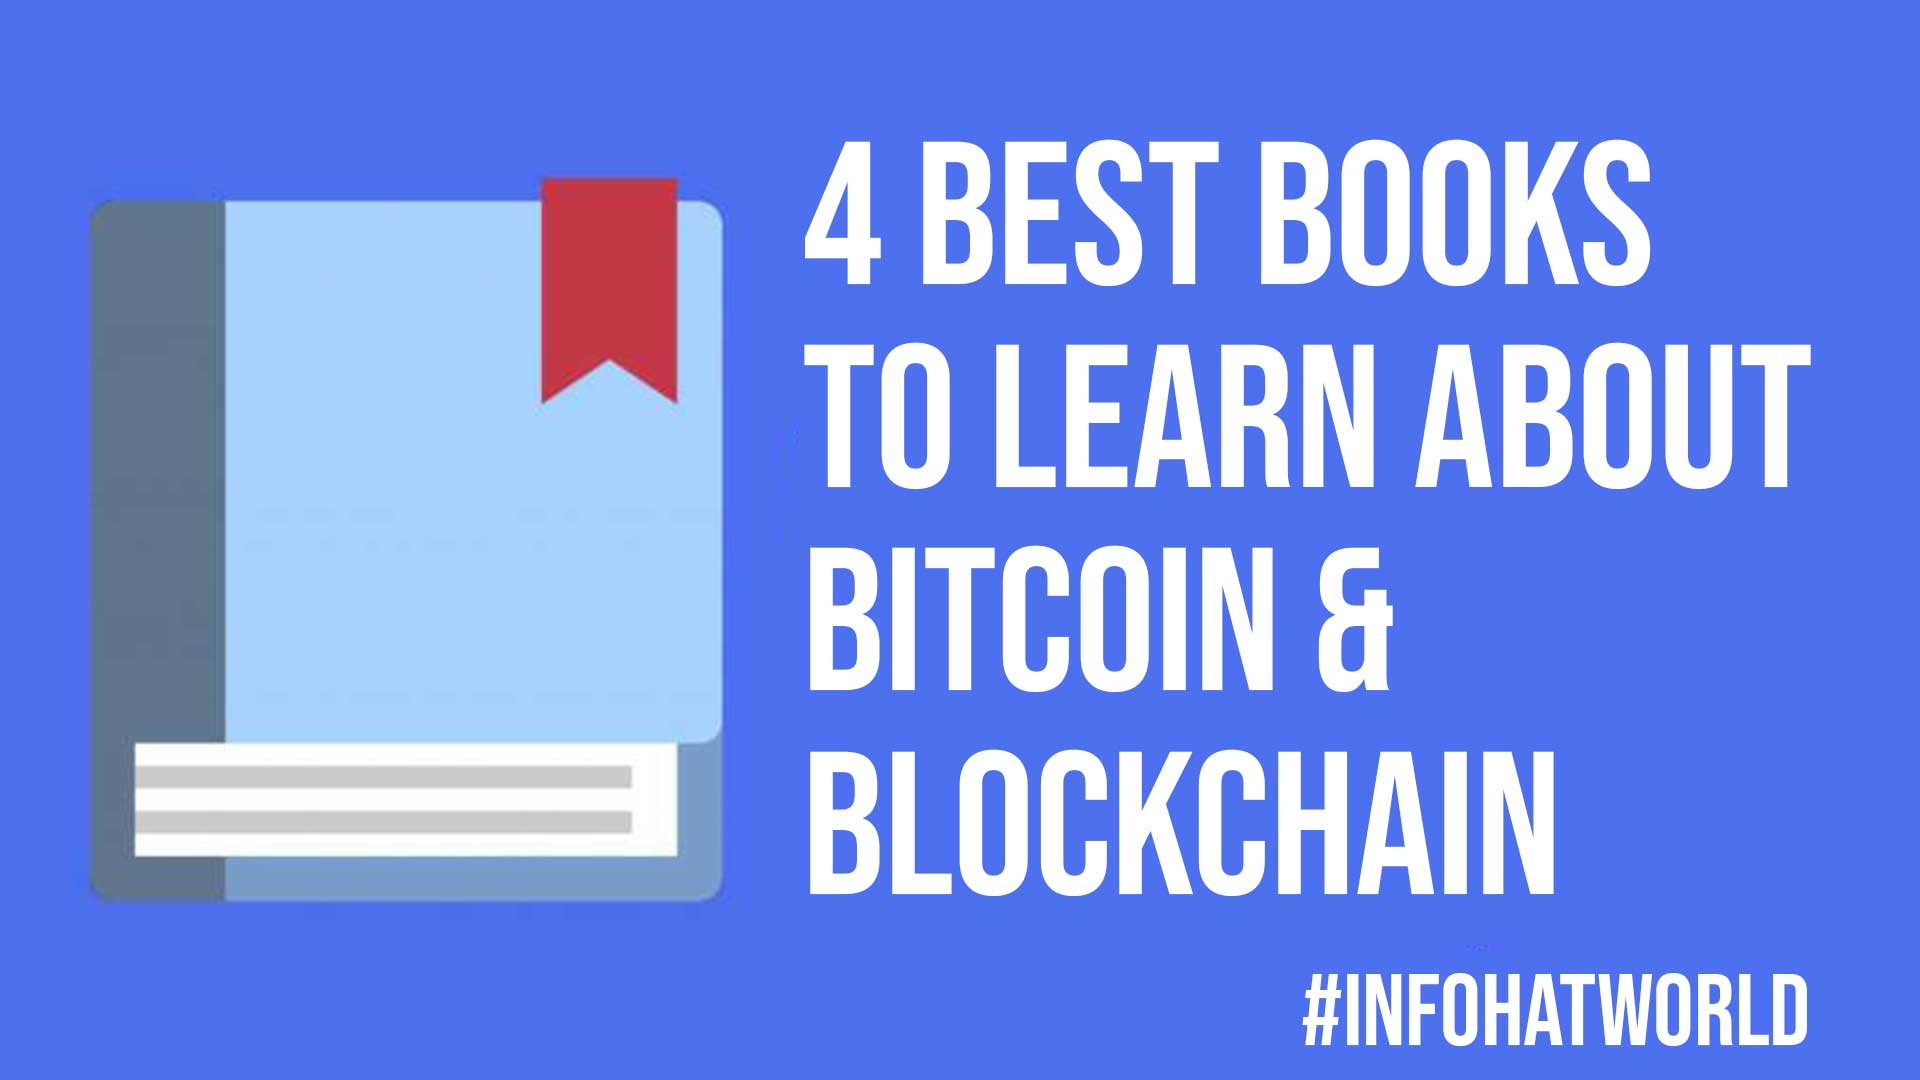 4 Best Books to Learn About Bitcoin Blockchain